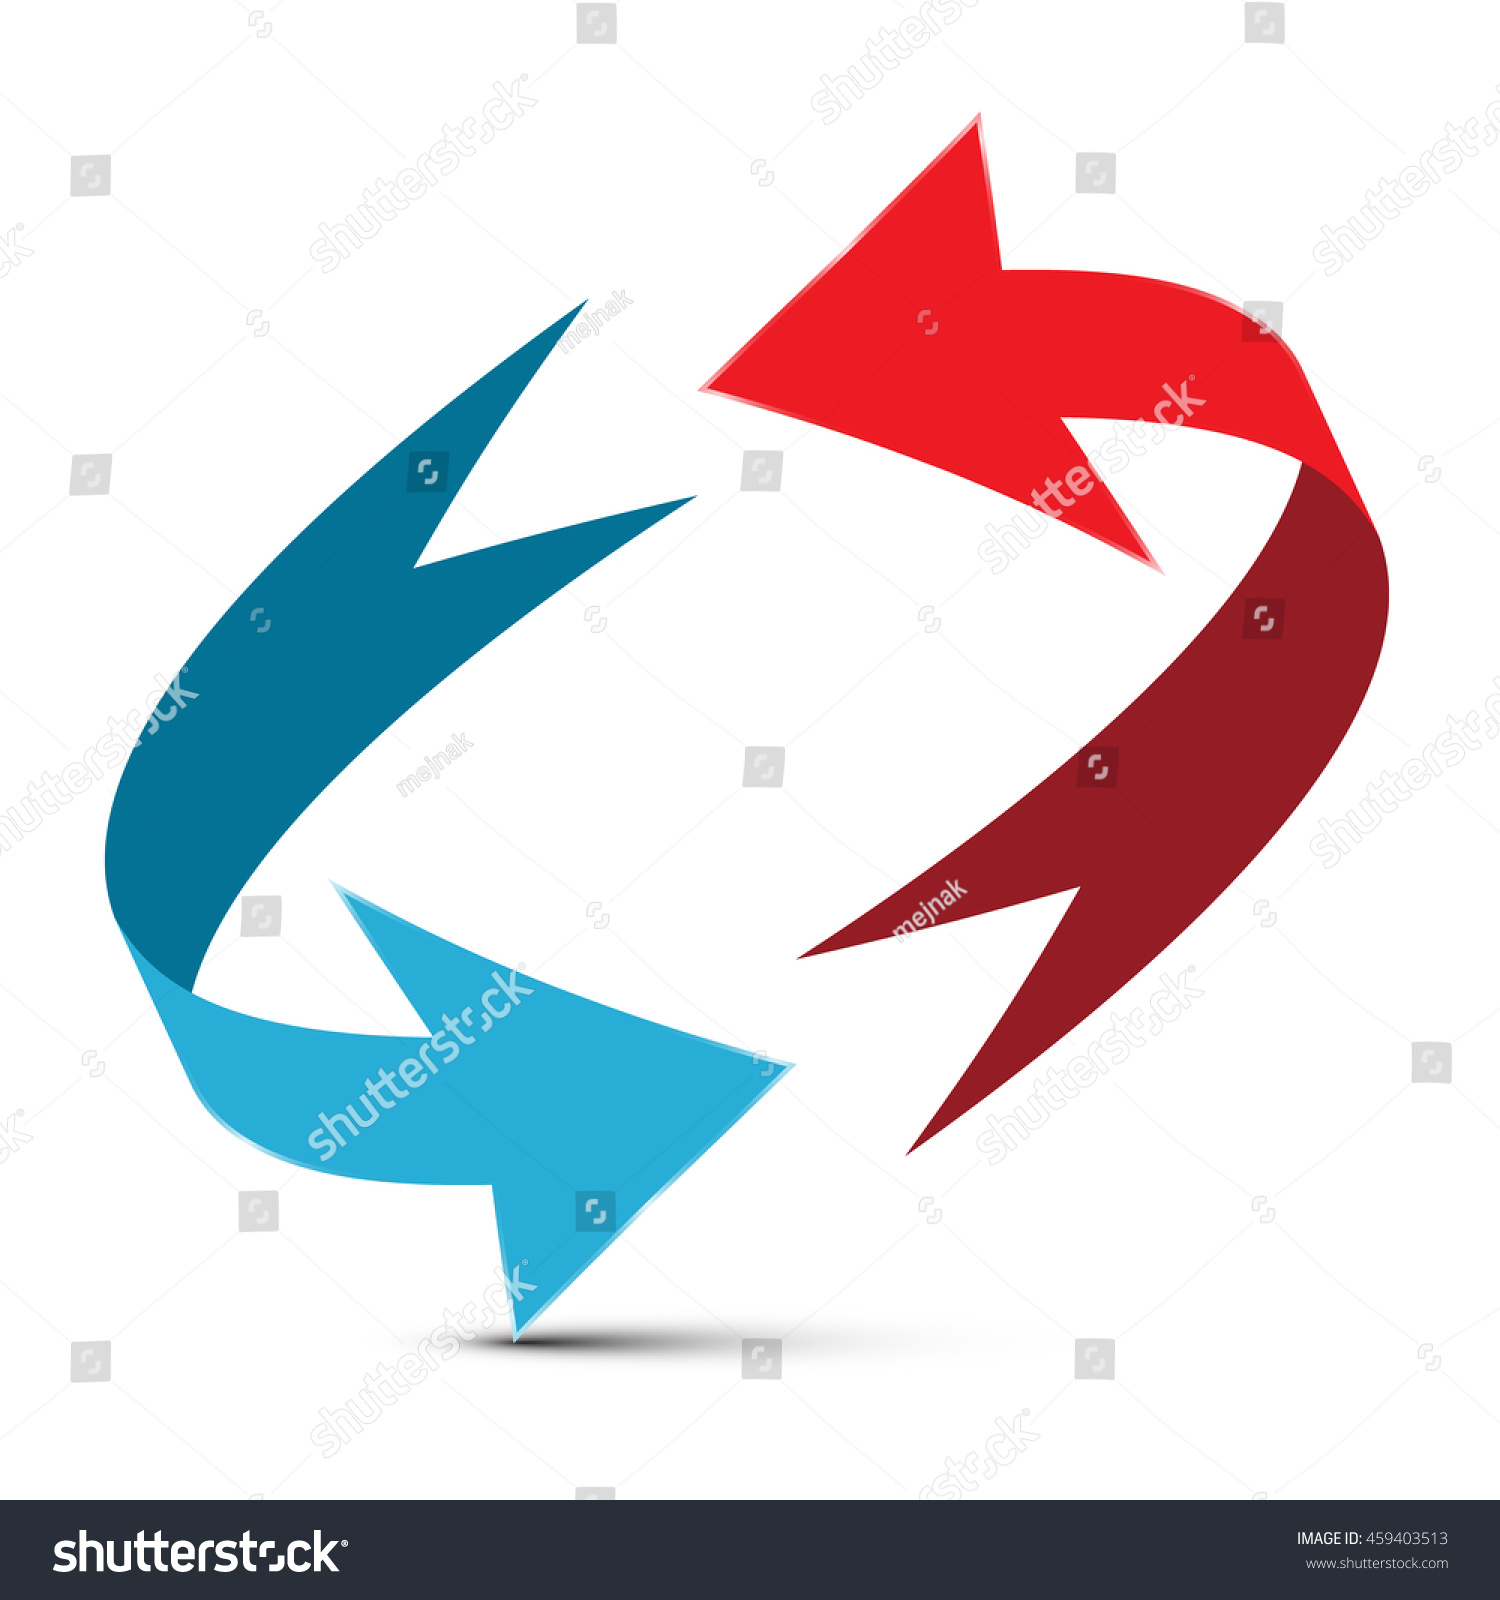 Arrows Illustration Red Blue Double Arrow Stock Vector Royalty Free